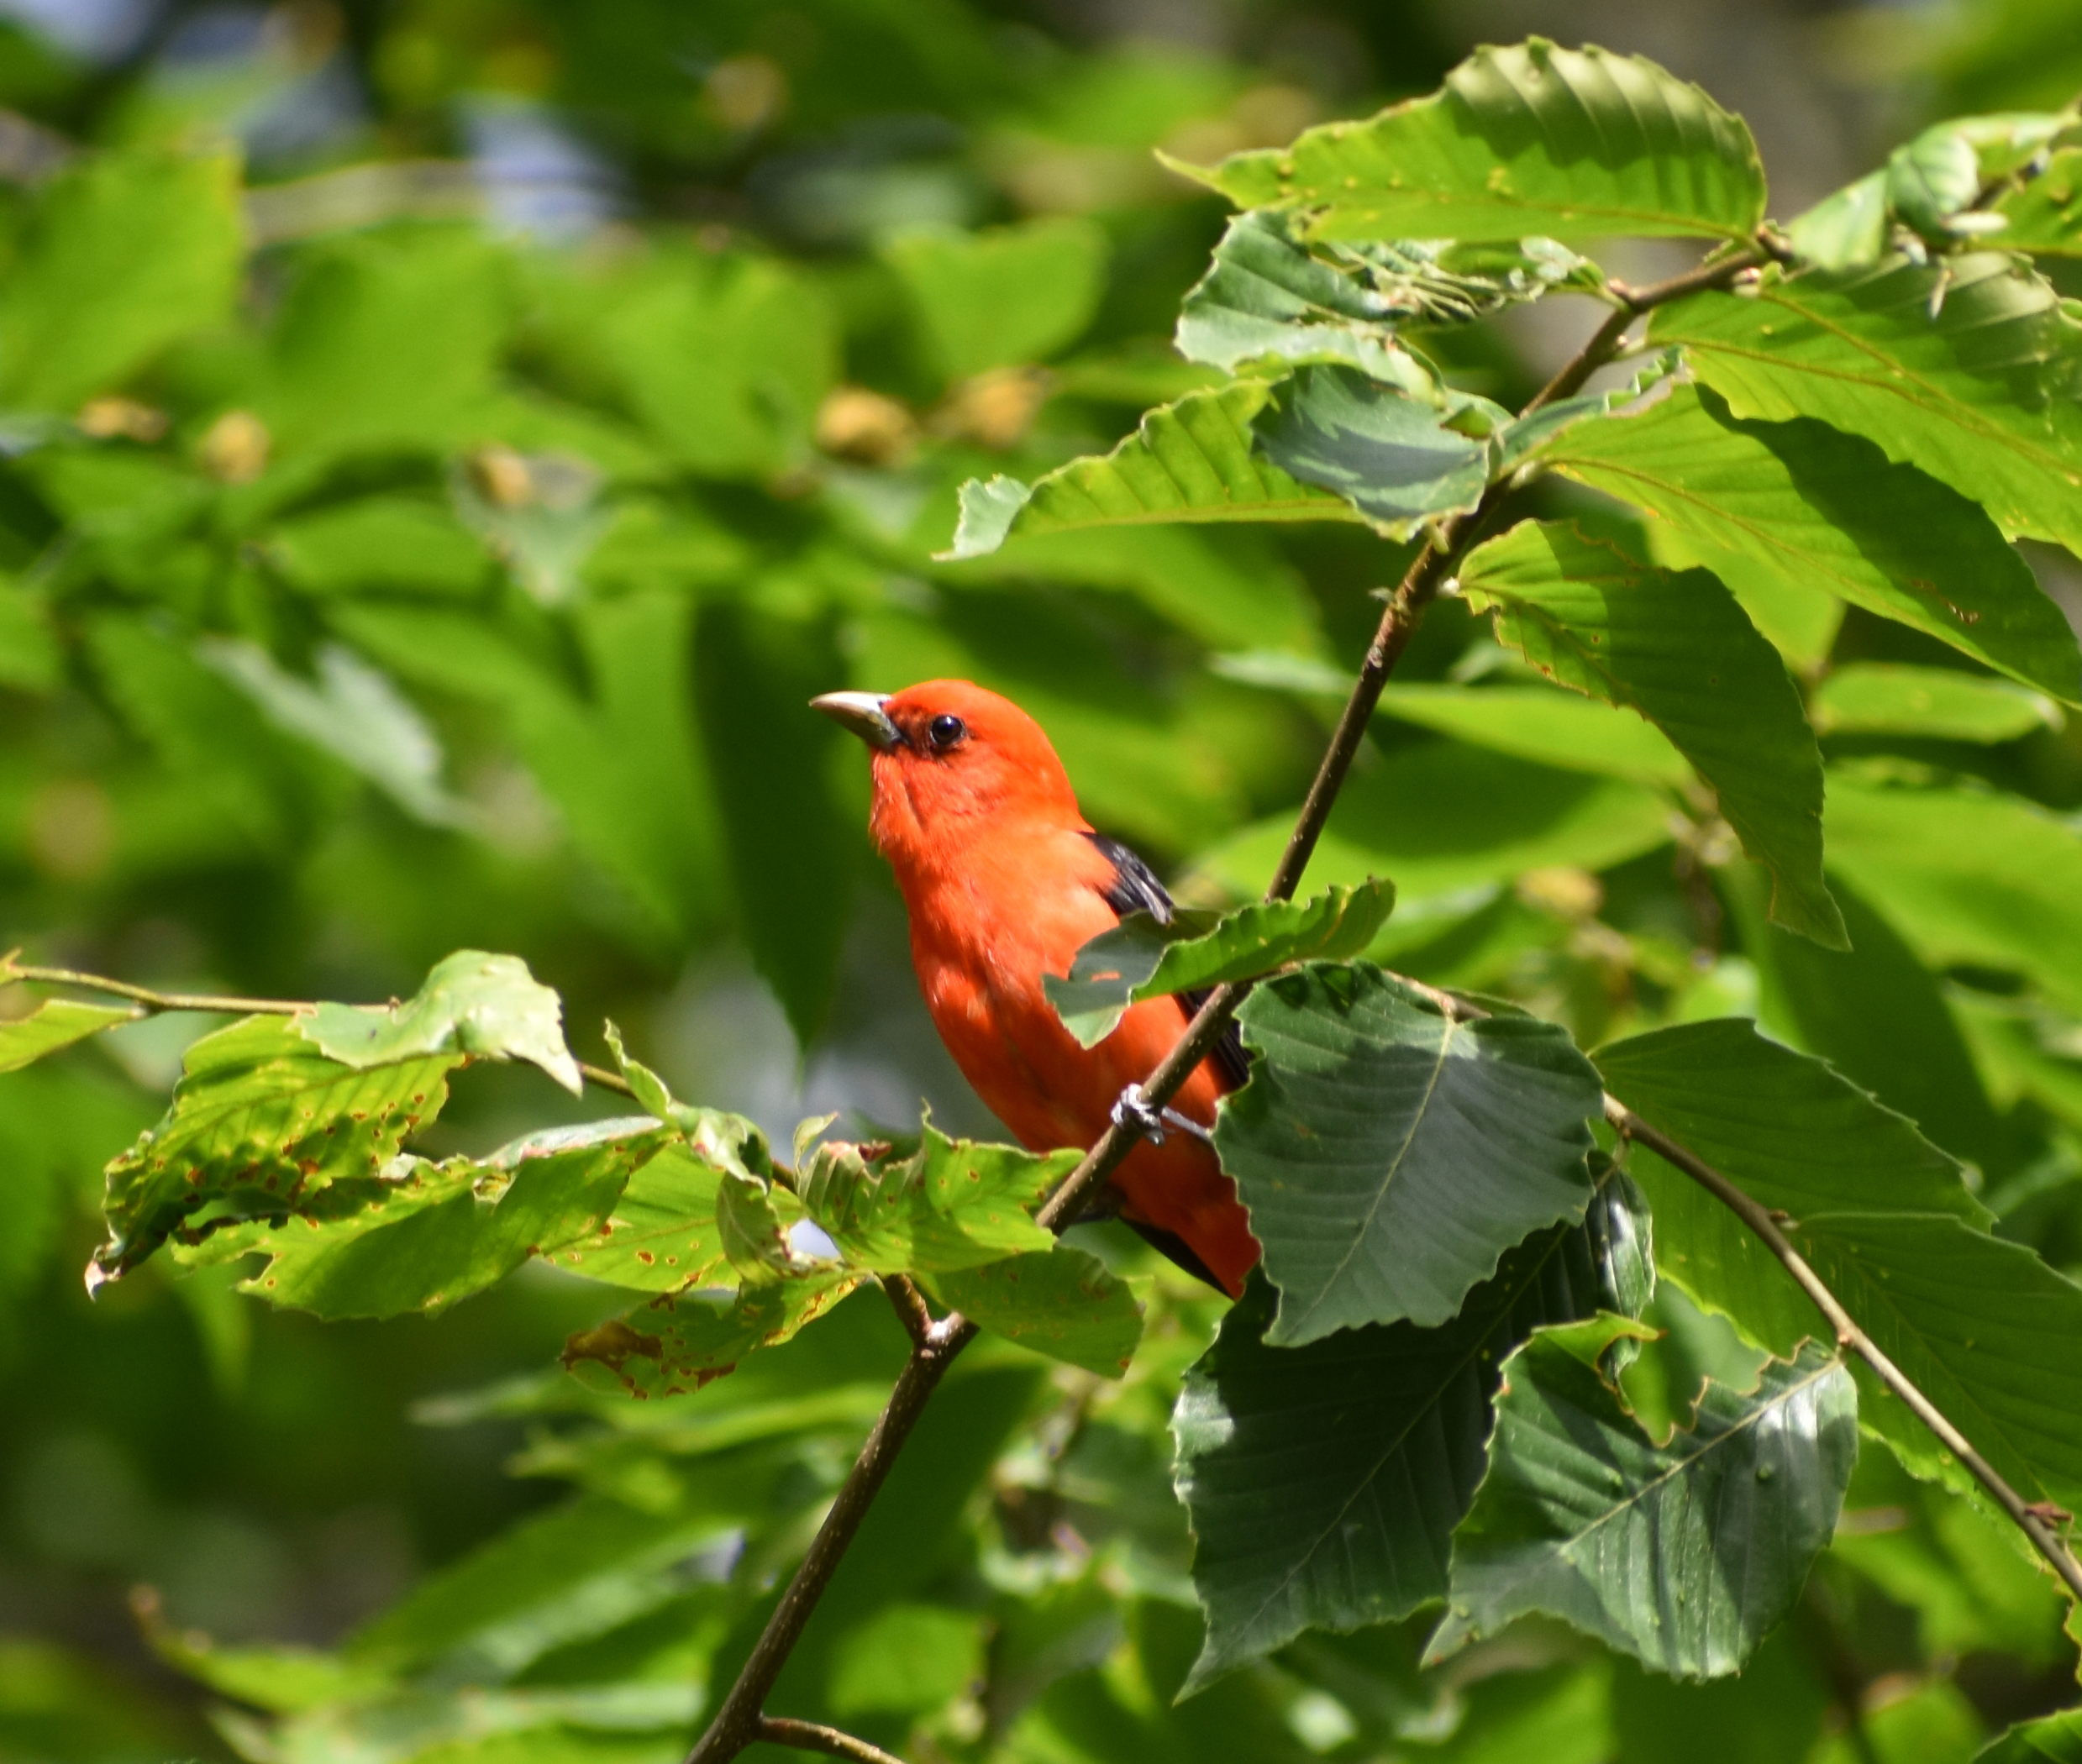 Scarlet Tanager foraging in American Beech